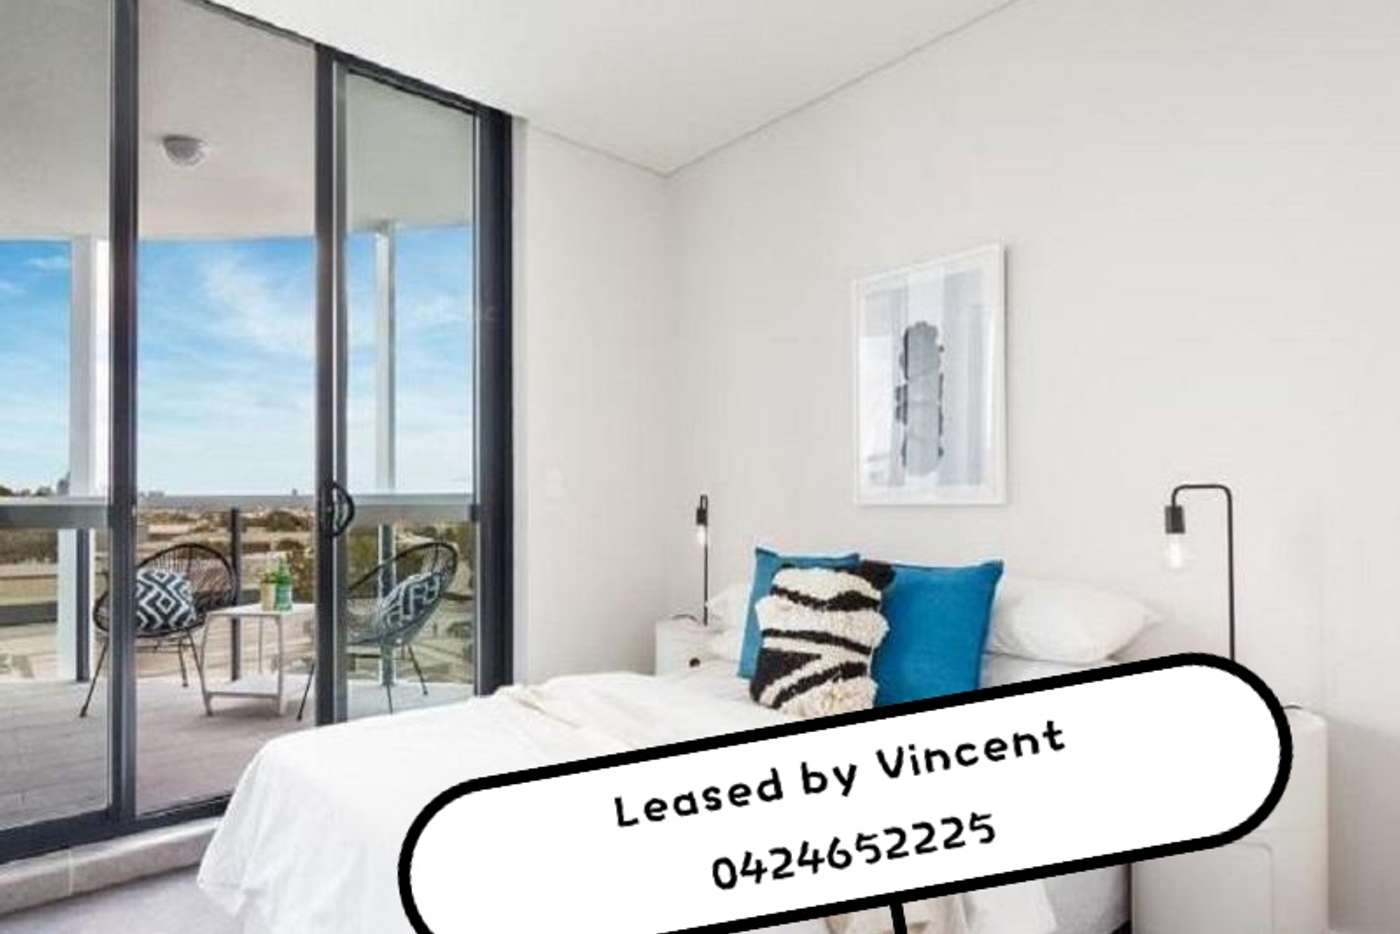 Main view of Homely apartment listing, 409/581 GARDENERS ROAD, Mascot NSW 2020